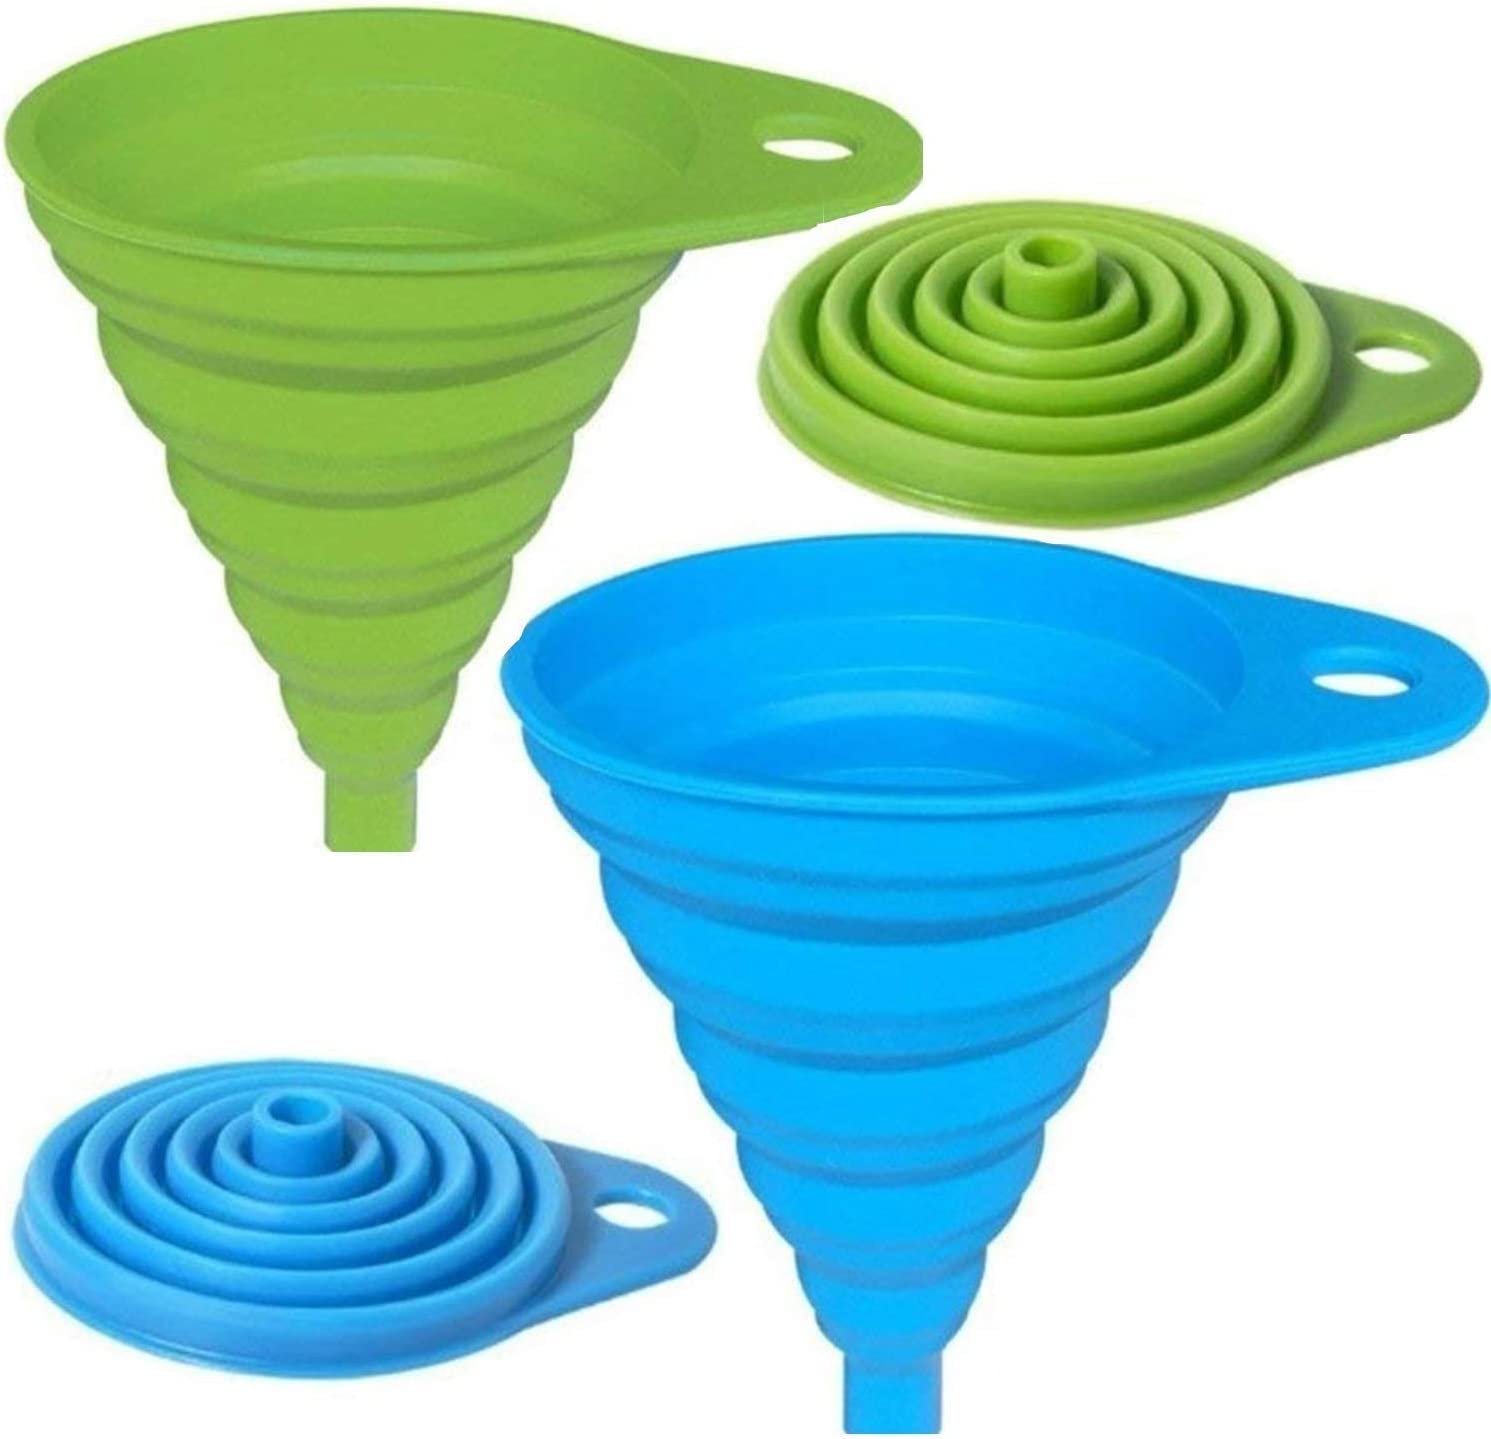 silicone gel collapsible practical foldable funnel hopper kitchen tools PLEFLA